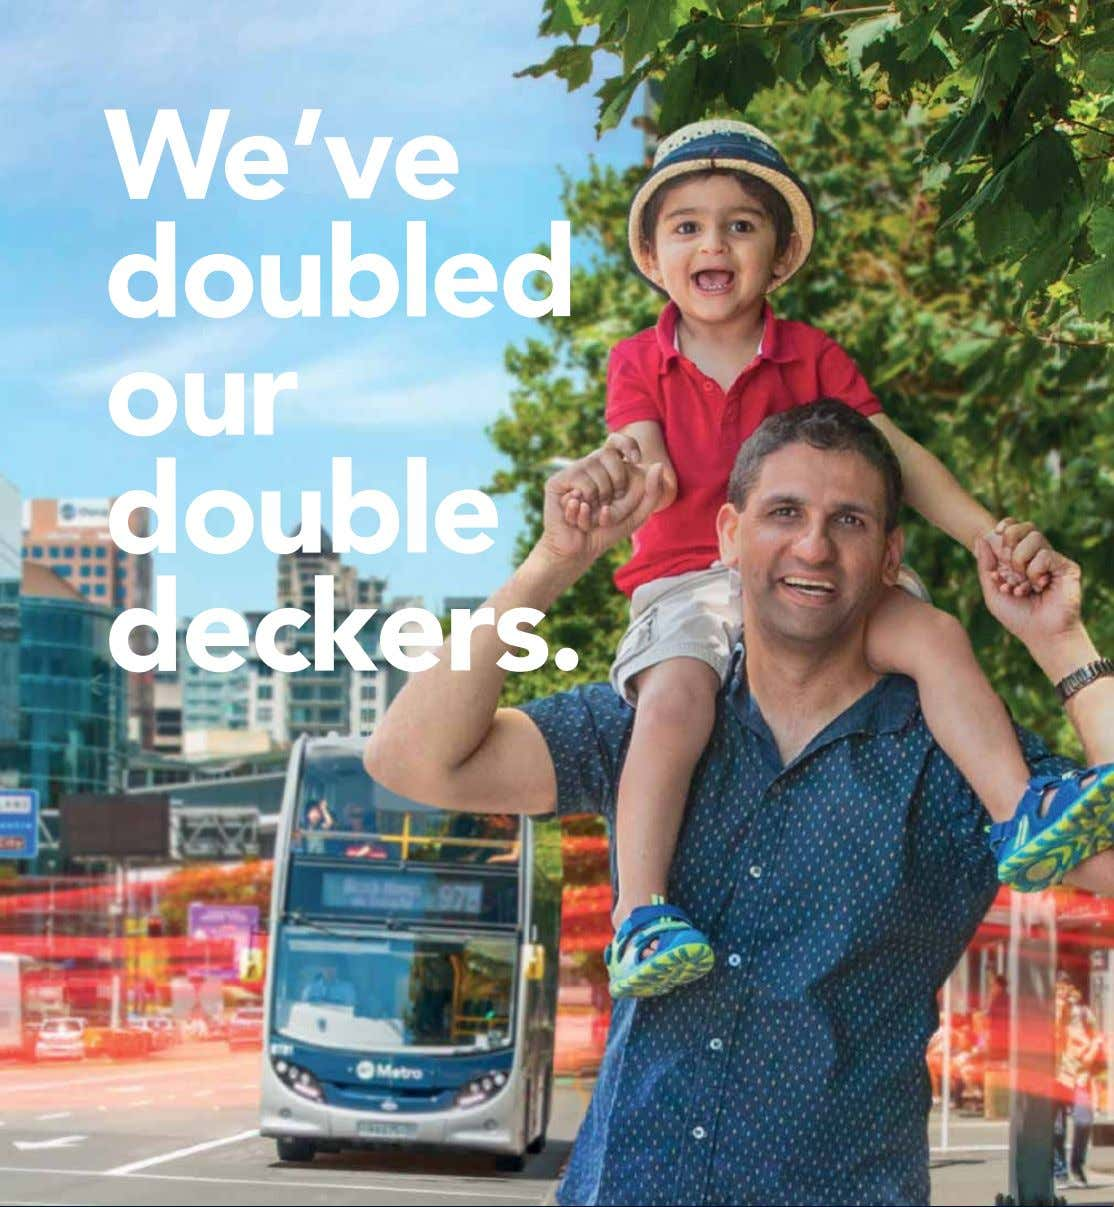 We've doubled our double deckers.